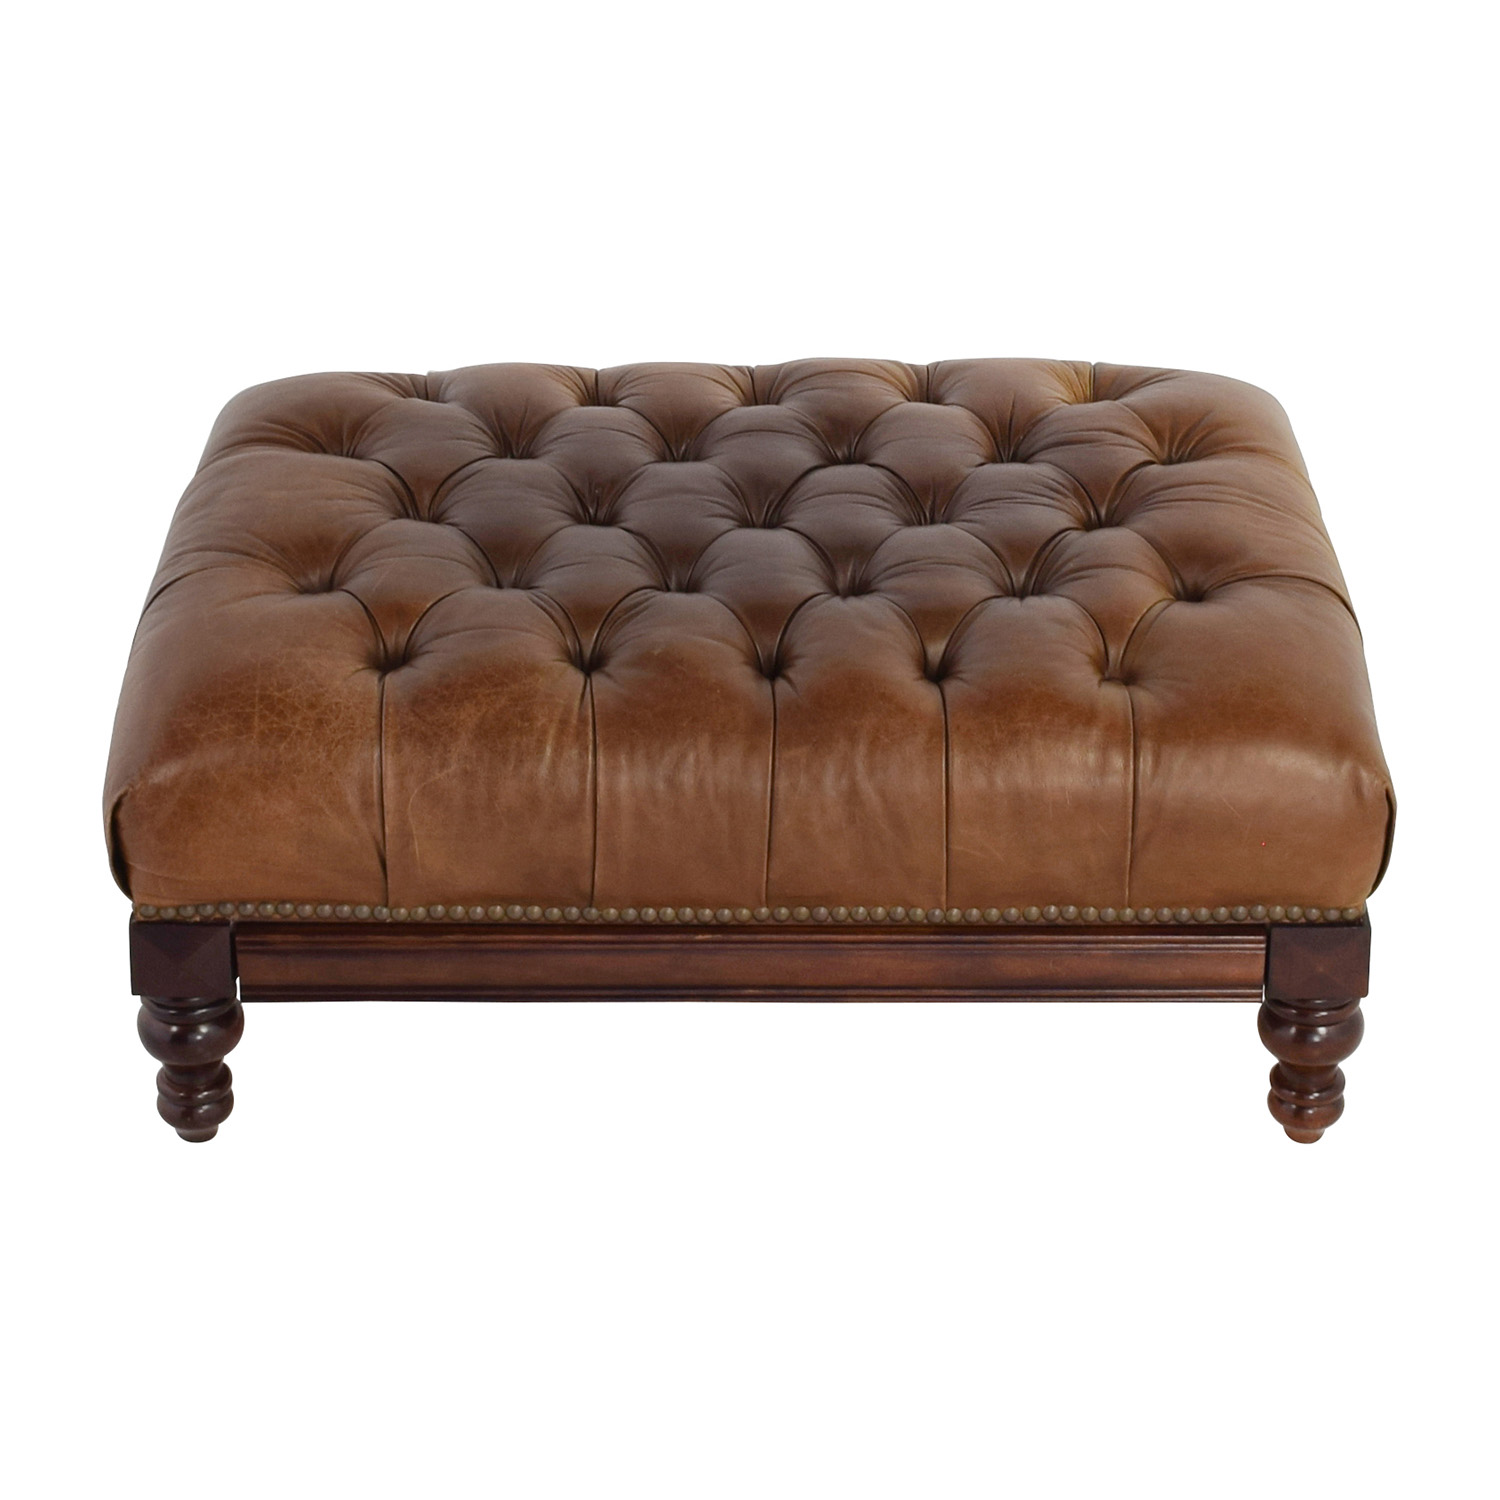 77 Off Antique Tufted Leather Ottoman With Secret